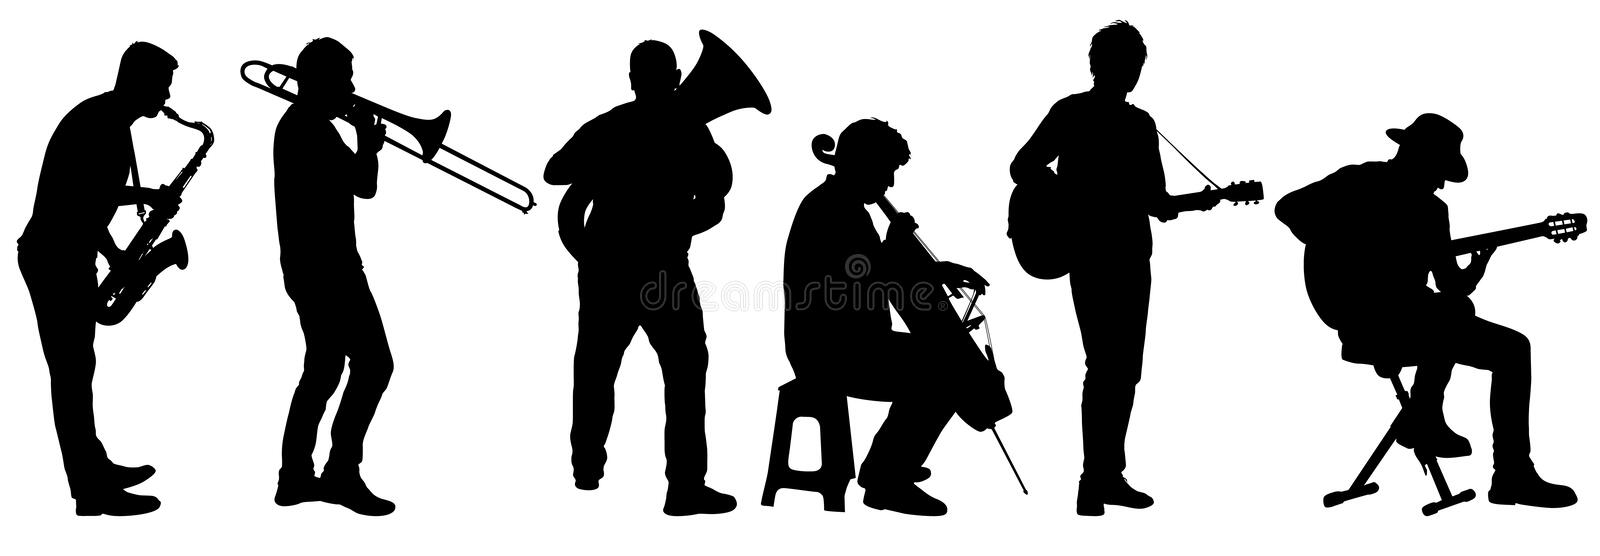 Silhouettes street musicians playing instruments on a white background stock illustration